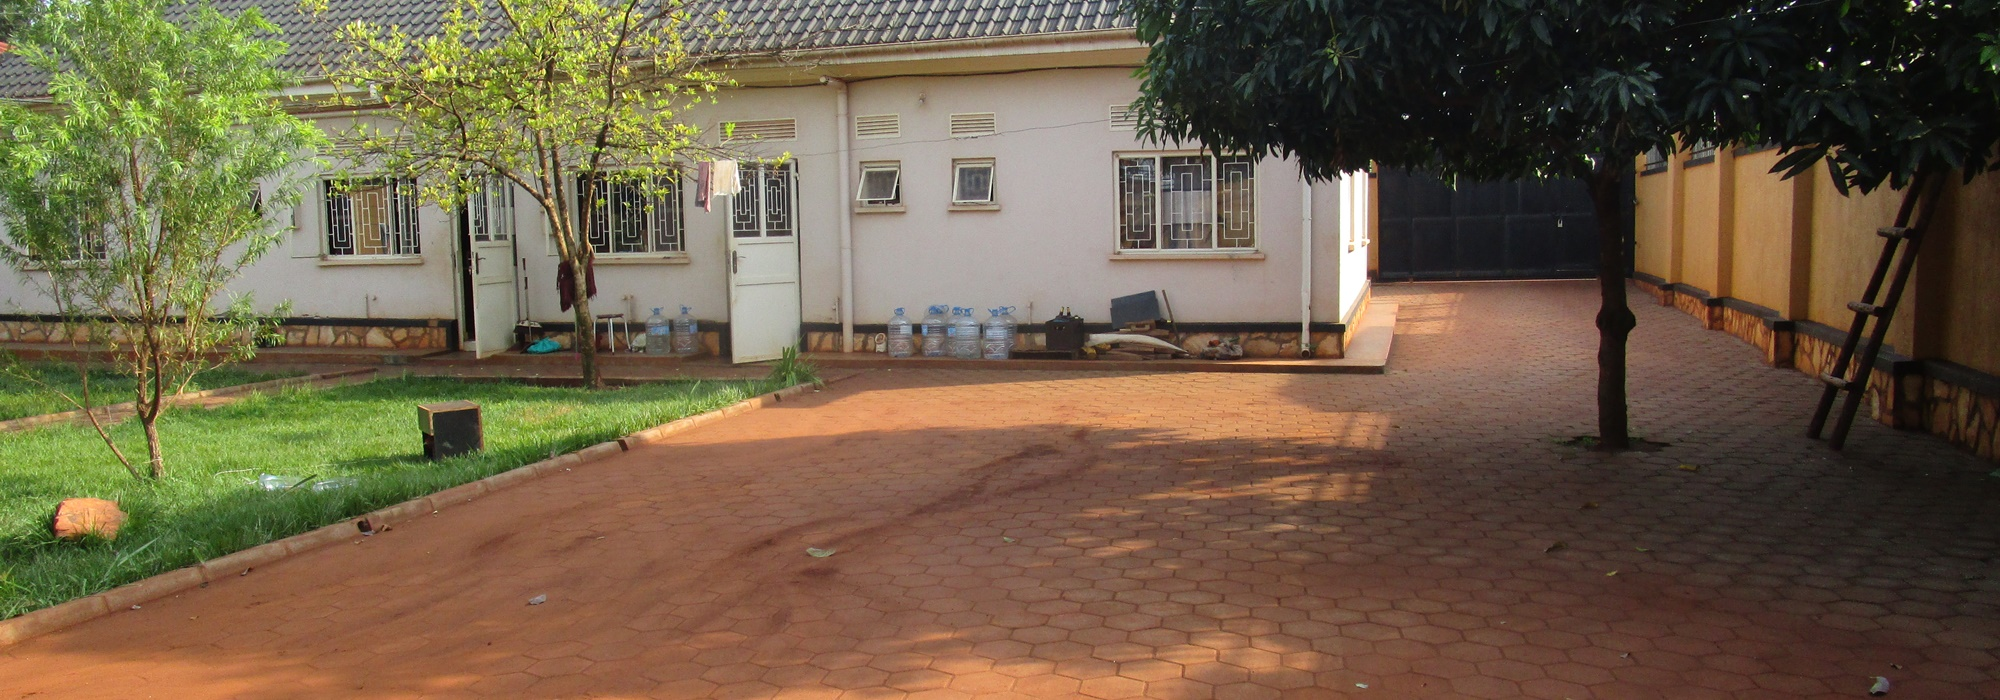 FOUR BEDROOM BUNGALOW FOR SALE IN JINJA MUNICIPALITY